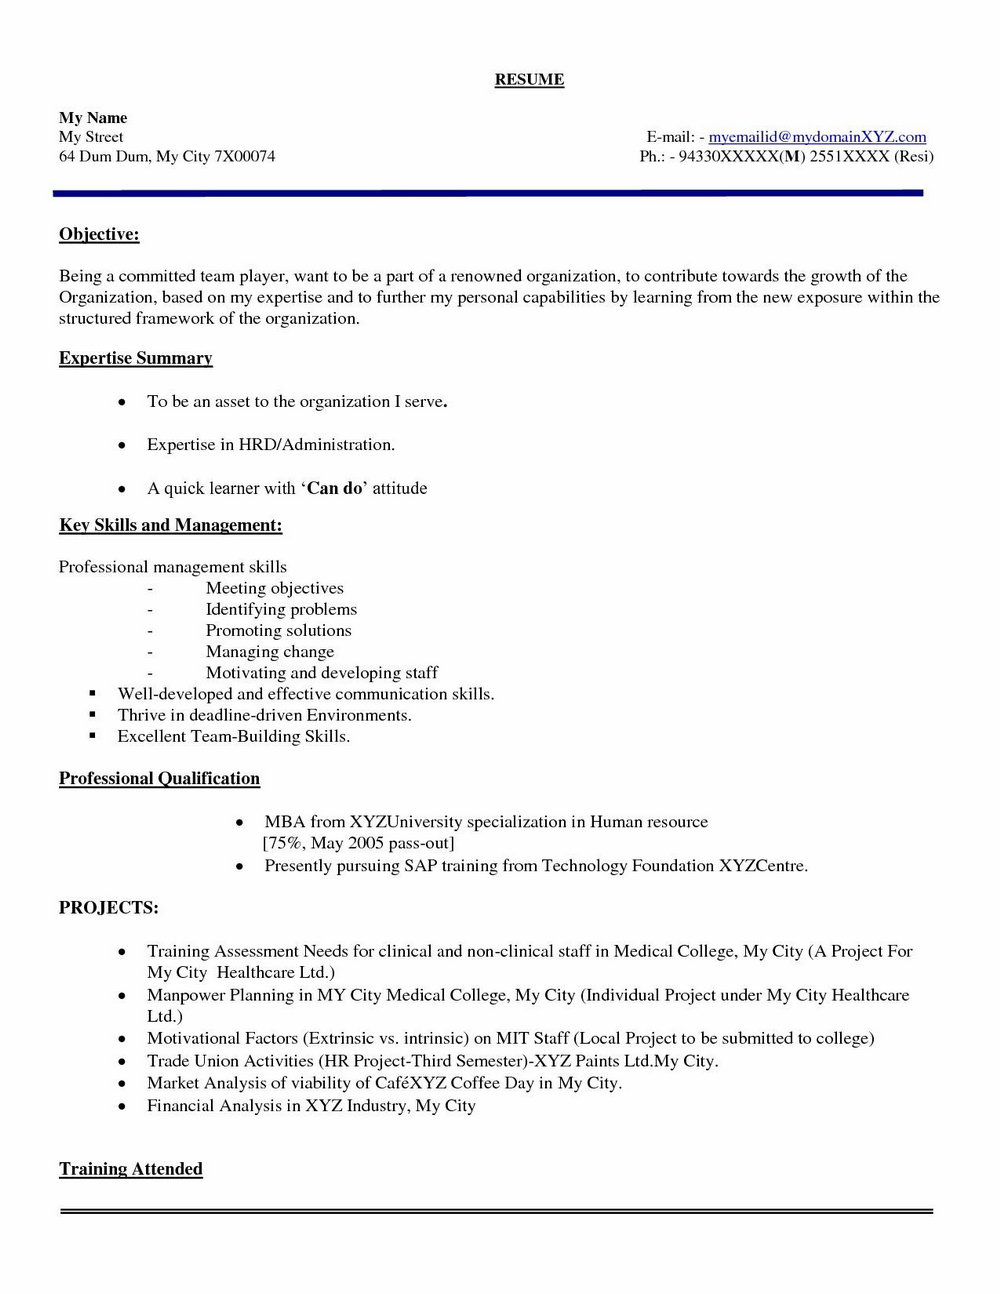 Simple Resume Format Pdf For Engineering Freshers